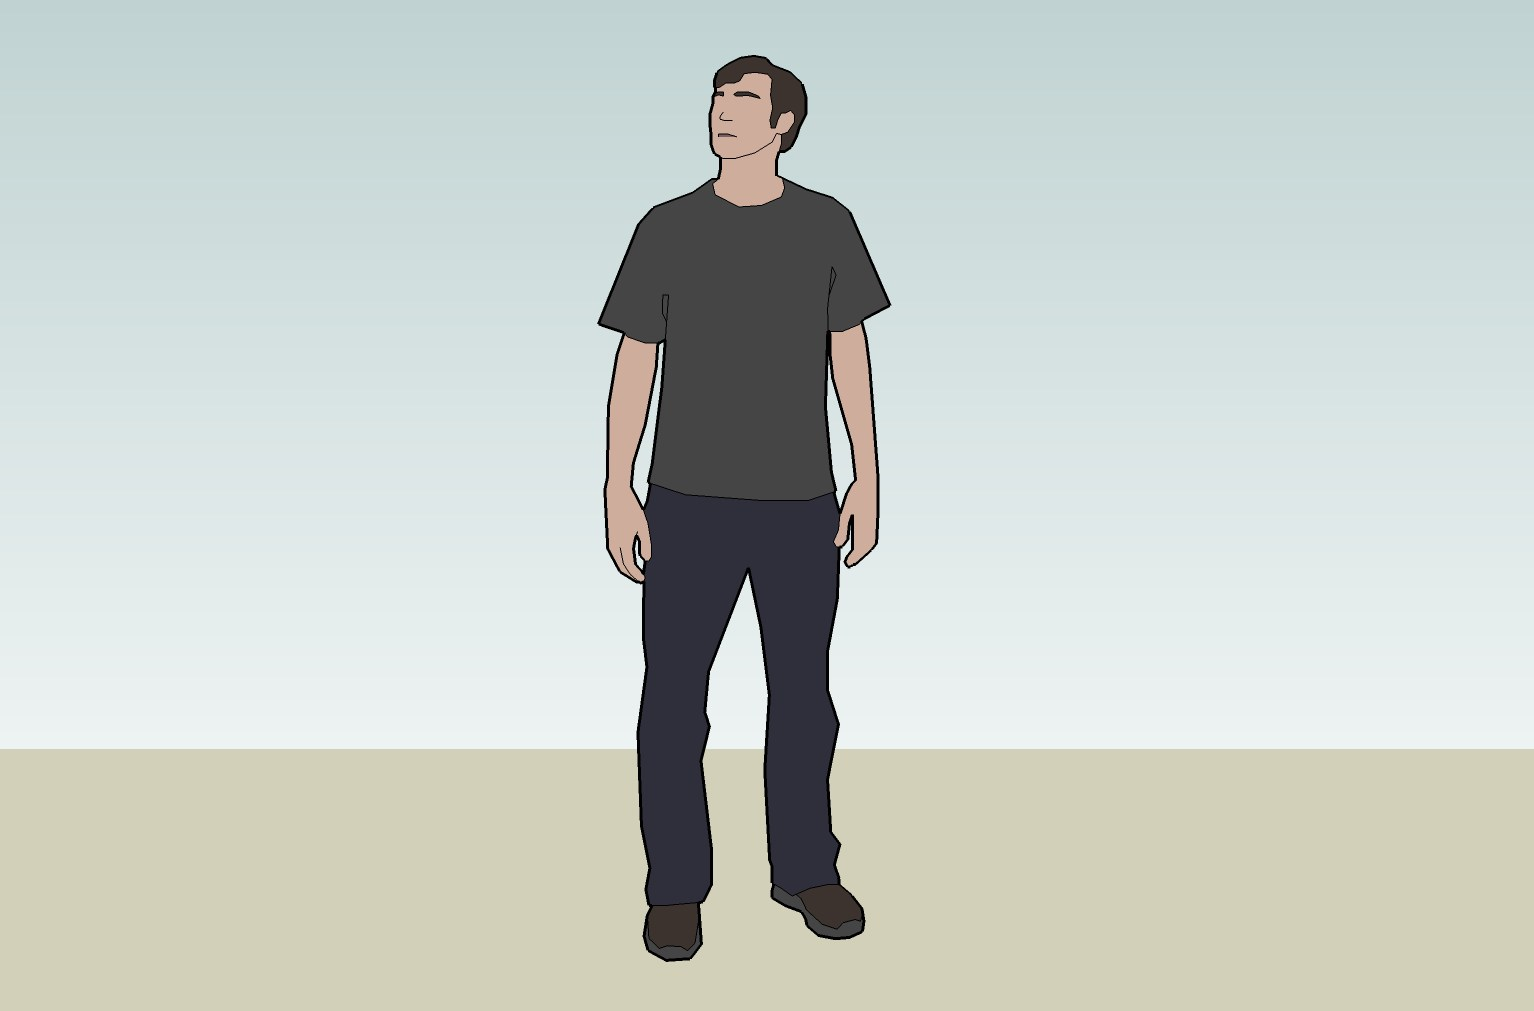 This image is one example of the ways in which SketchUp can be used to design people, places and spaces.  The University of Utah, Google and Universal Studios Creative will host a free workshop and tutorial on the SketchUp software for parents and teachers of children with autistic characteristics.